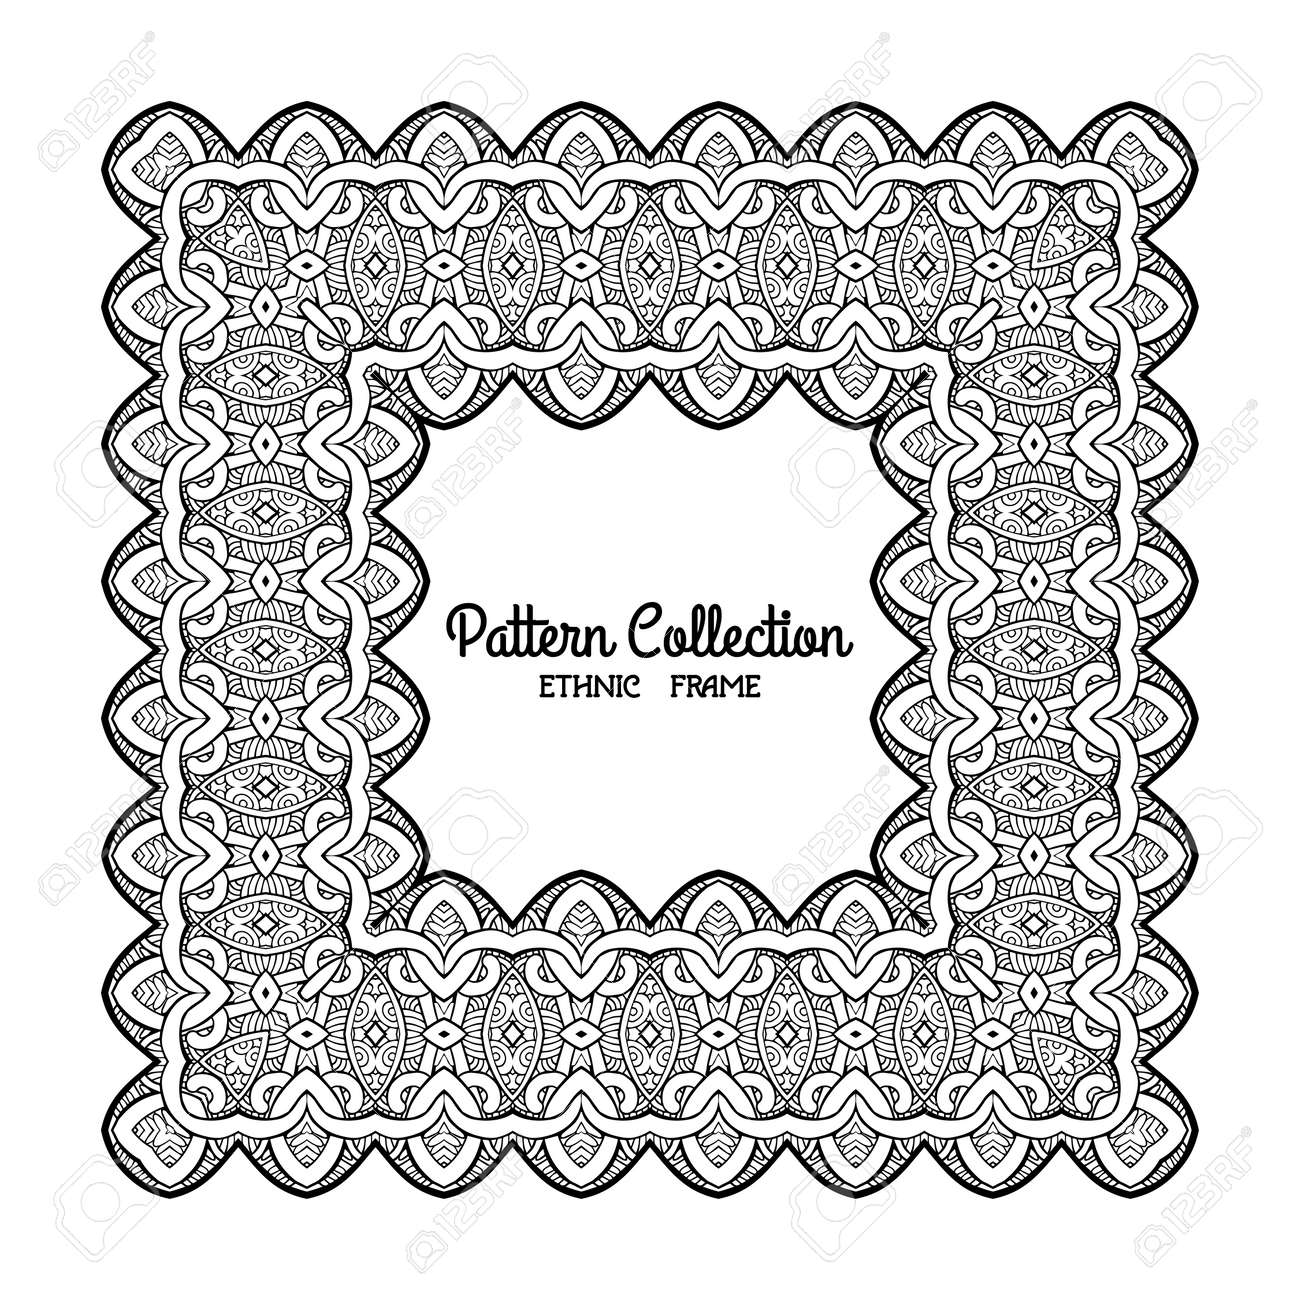 Outline Decorative Frame With Ethnic Tibet Pattern Space For Text Good Coloring Book